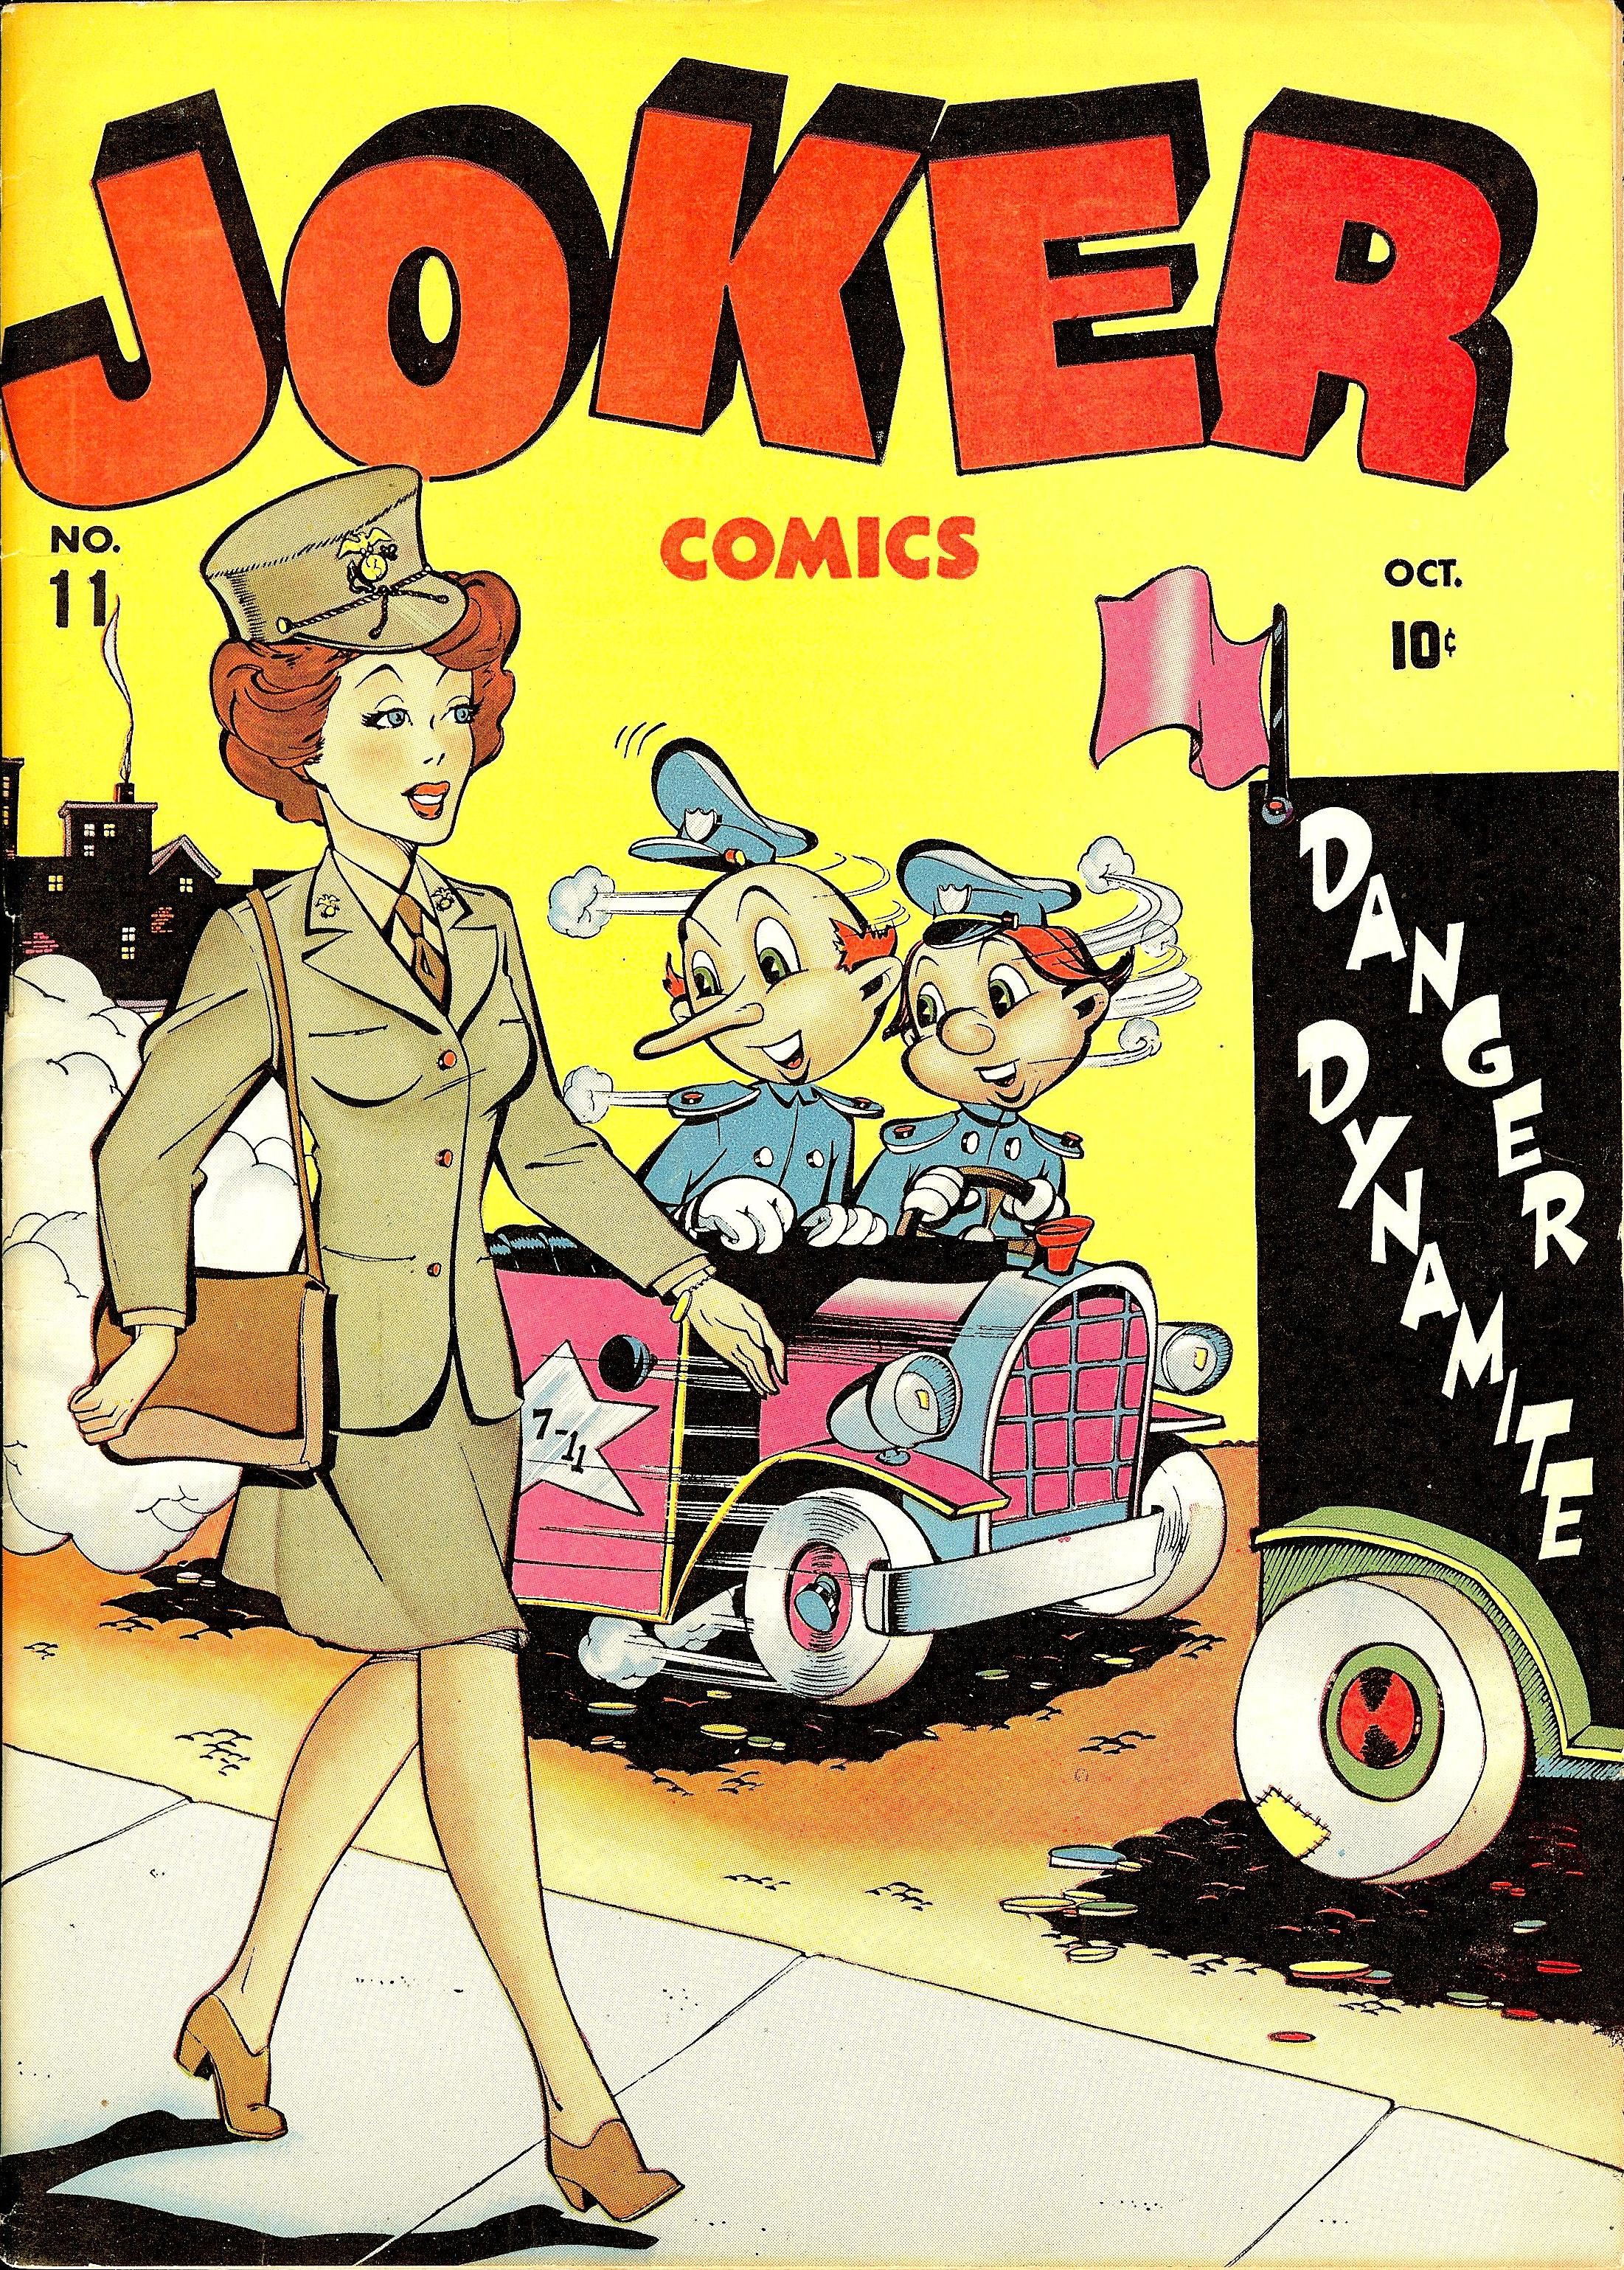 Joker Comics Vol 1 11